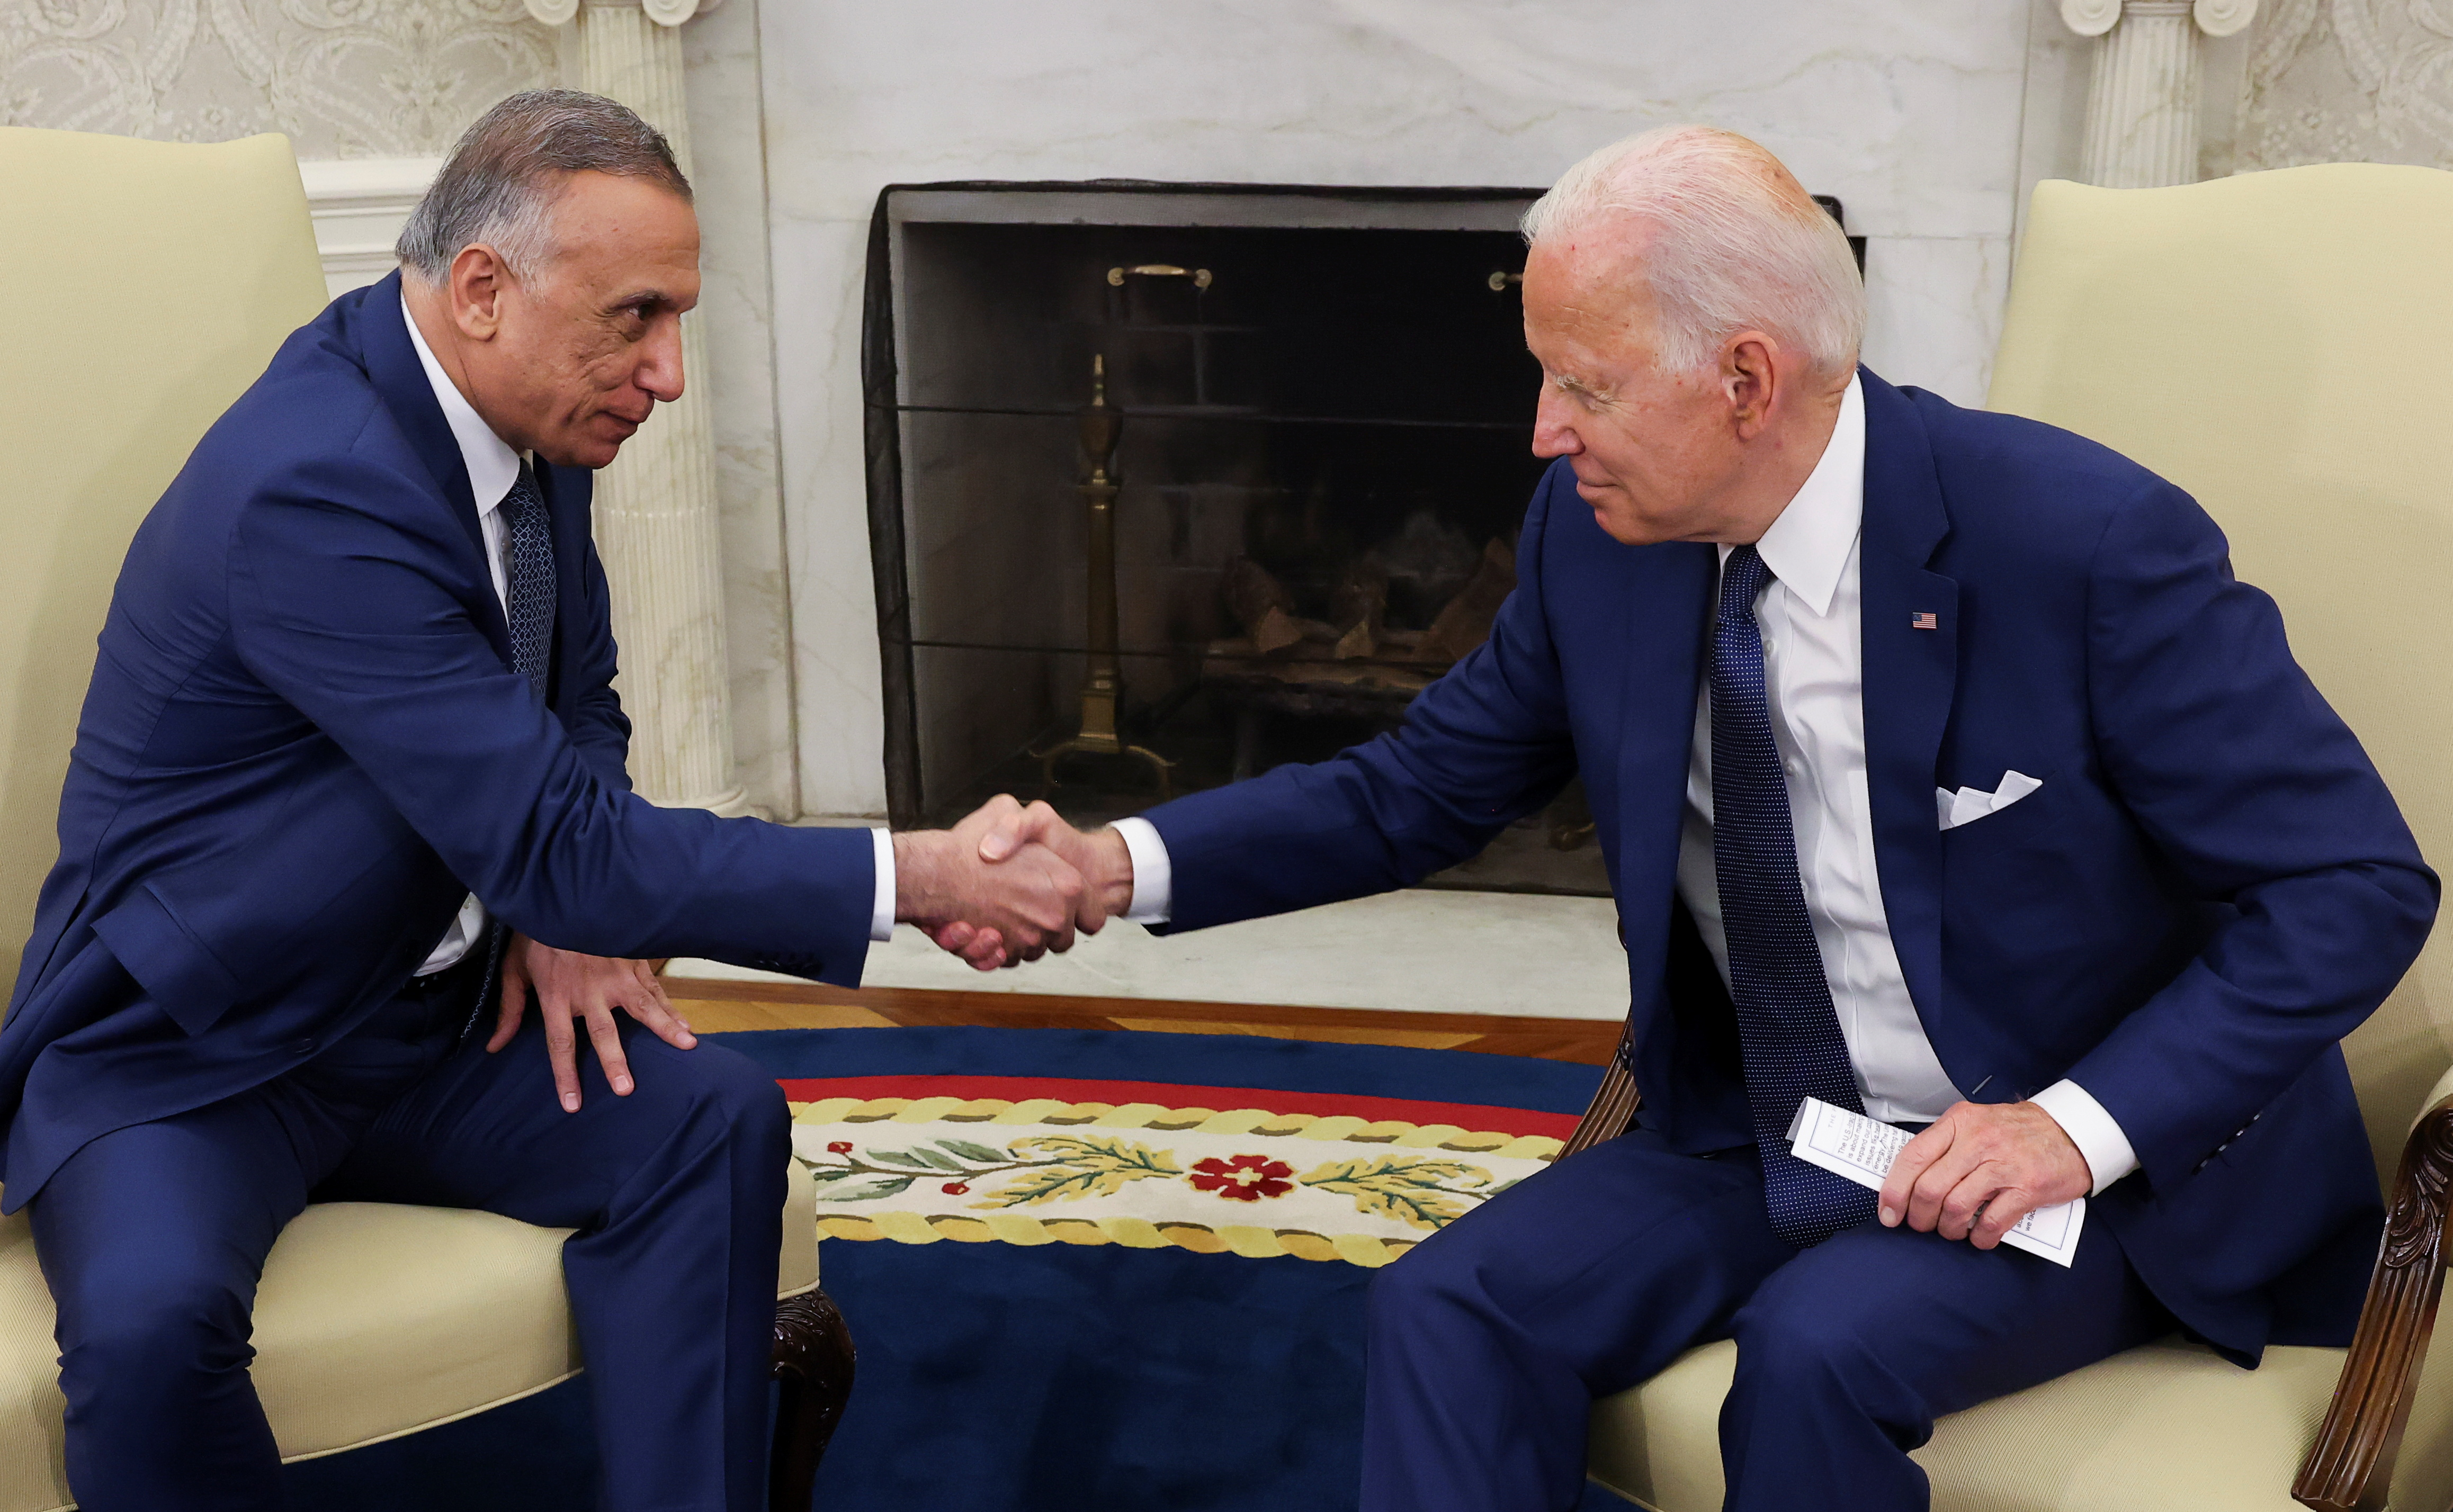 U.S. President Joe Biden greets Iraq's Prime Minister Mustafa Al-Kadhimi during a bilateral meeting in the Oval Office at the White House in Washington, U.S., July 26, 2021. REUTERS/Evelyn Hockstein